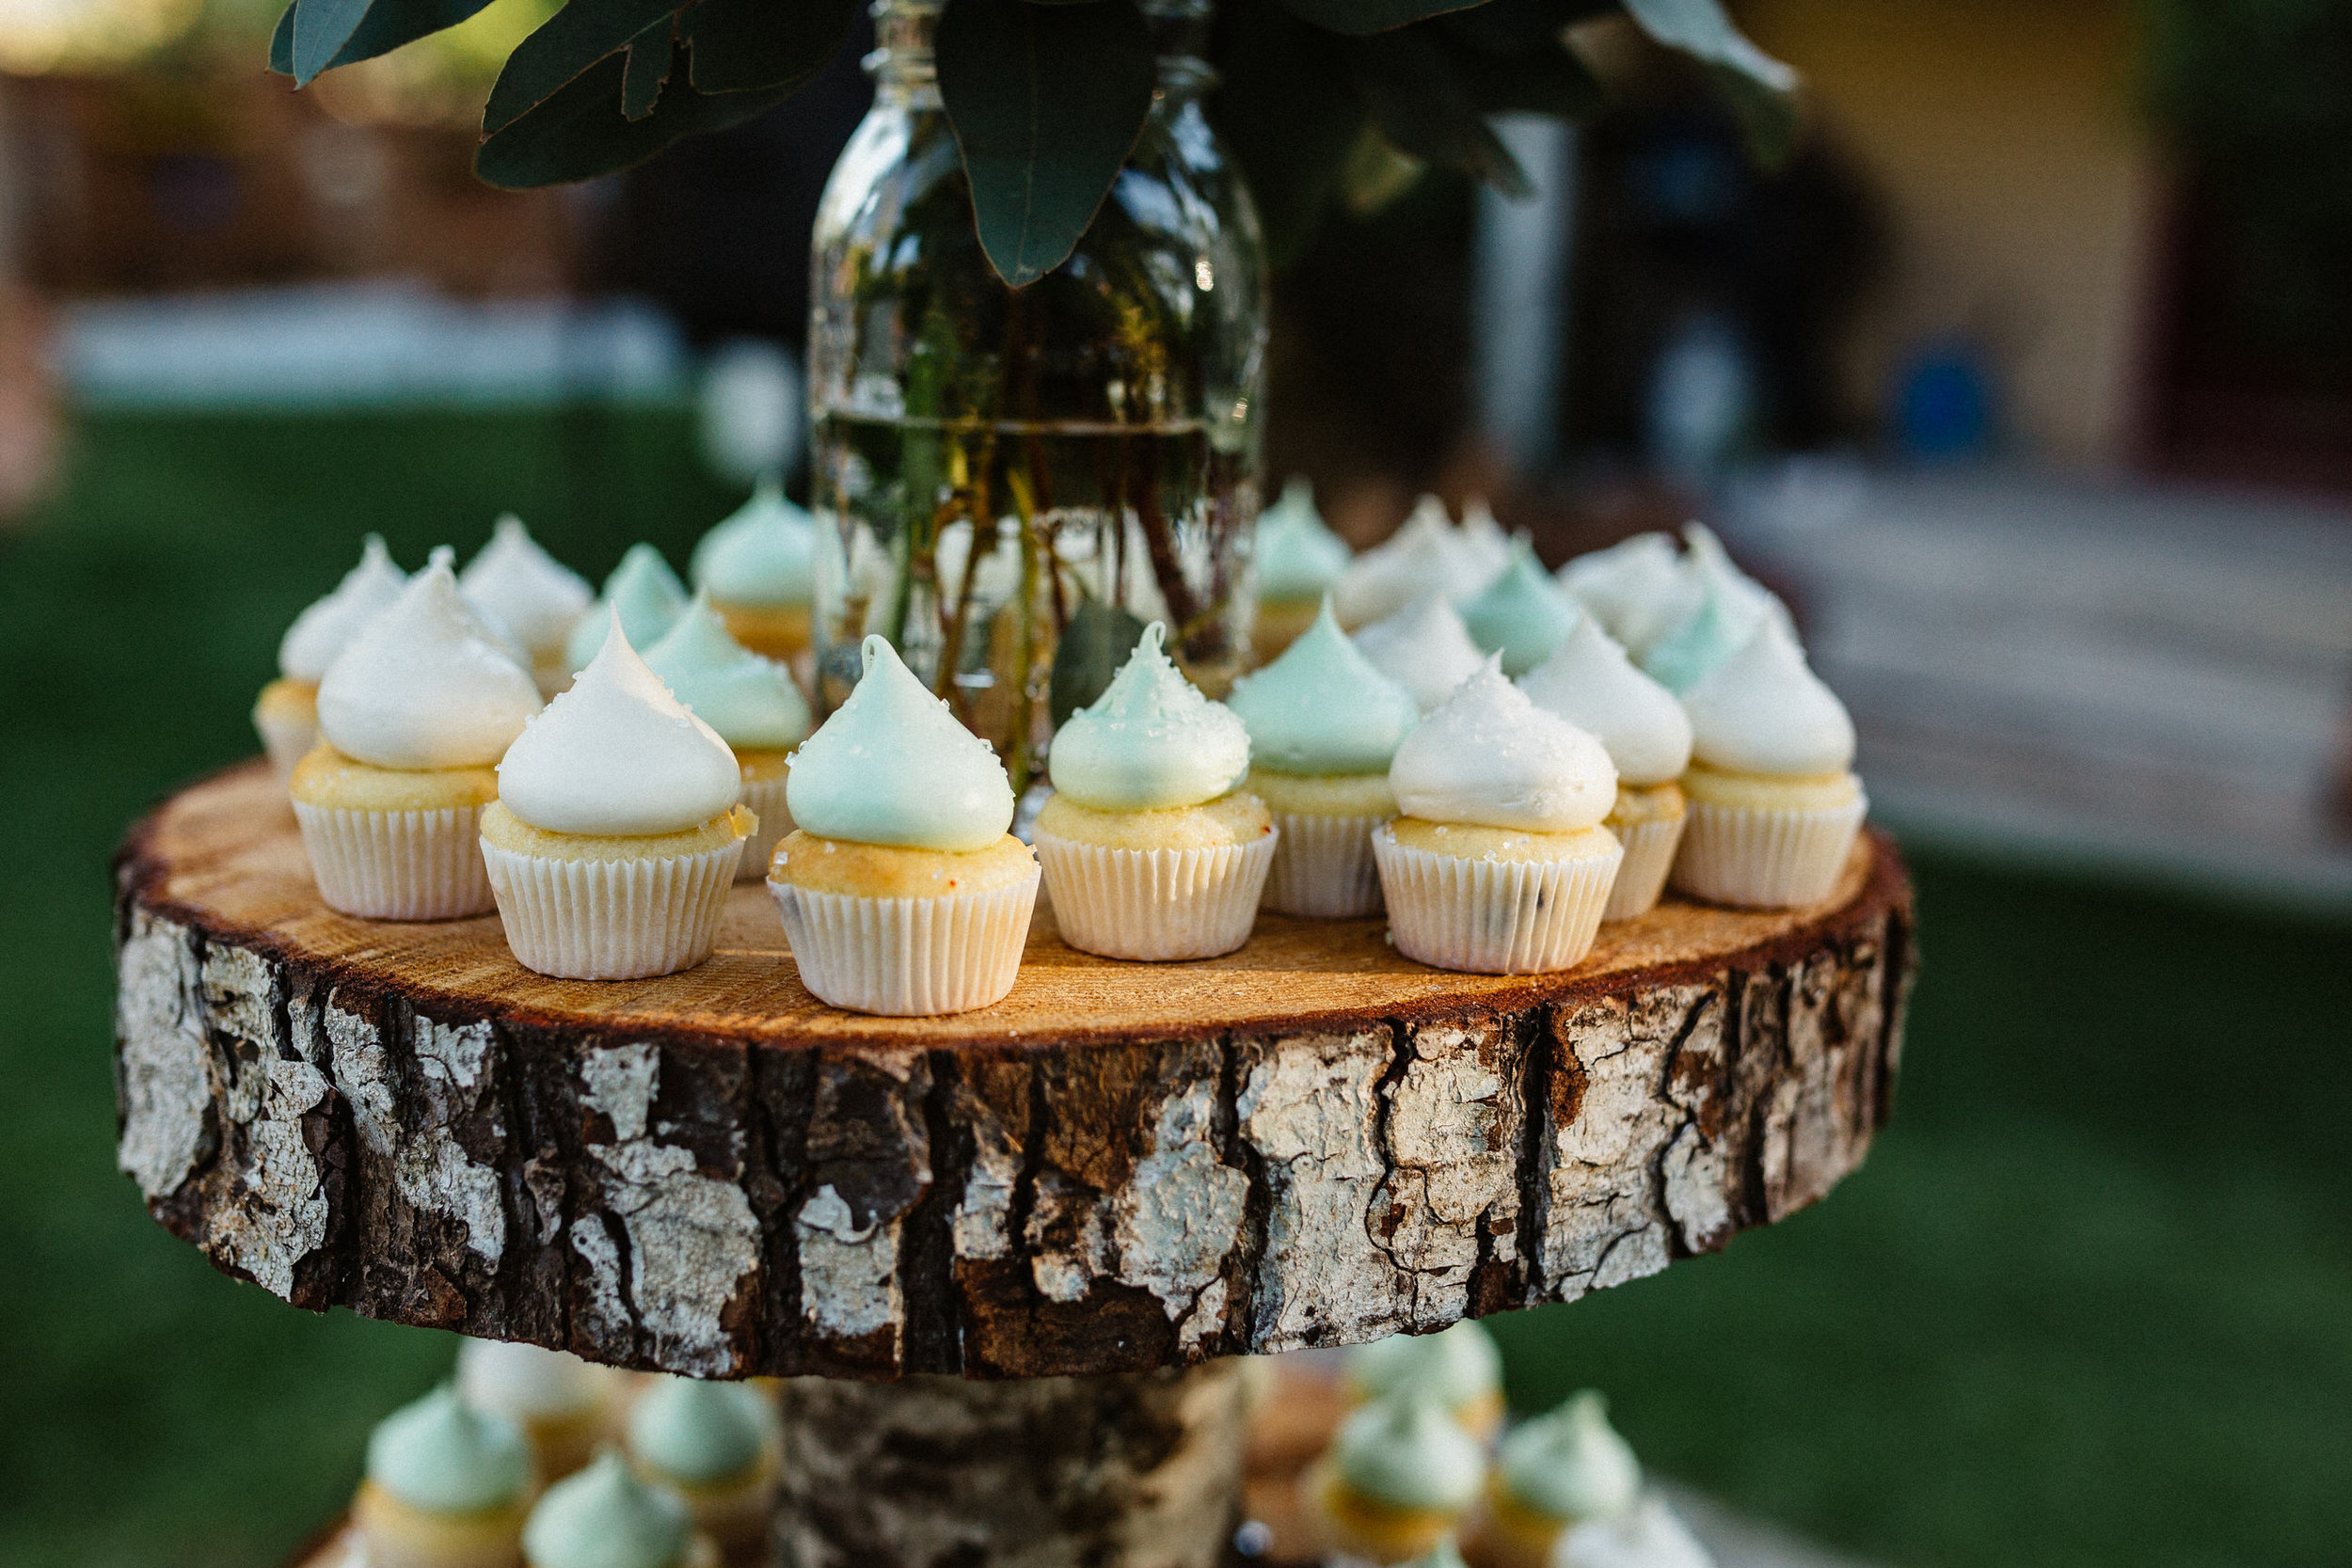 backyard wedding Heber City Utah destination wedding portland oregon photography0100.JPG